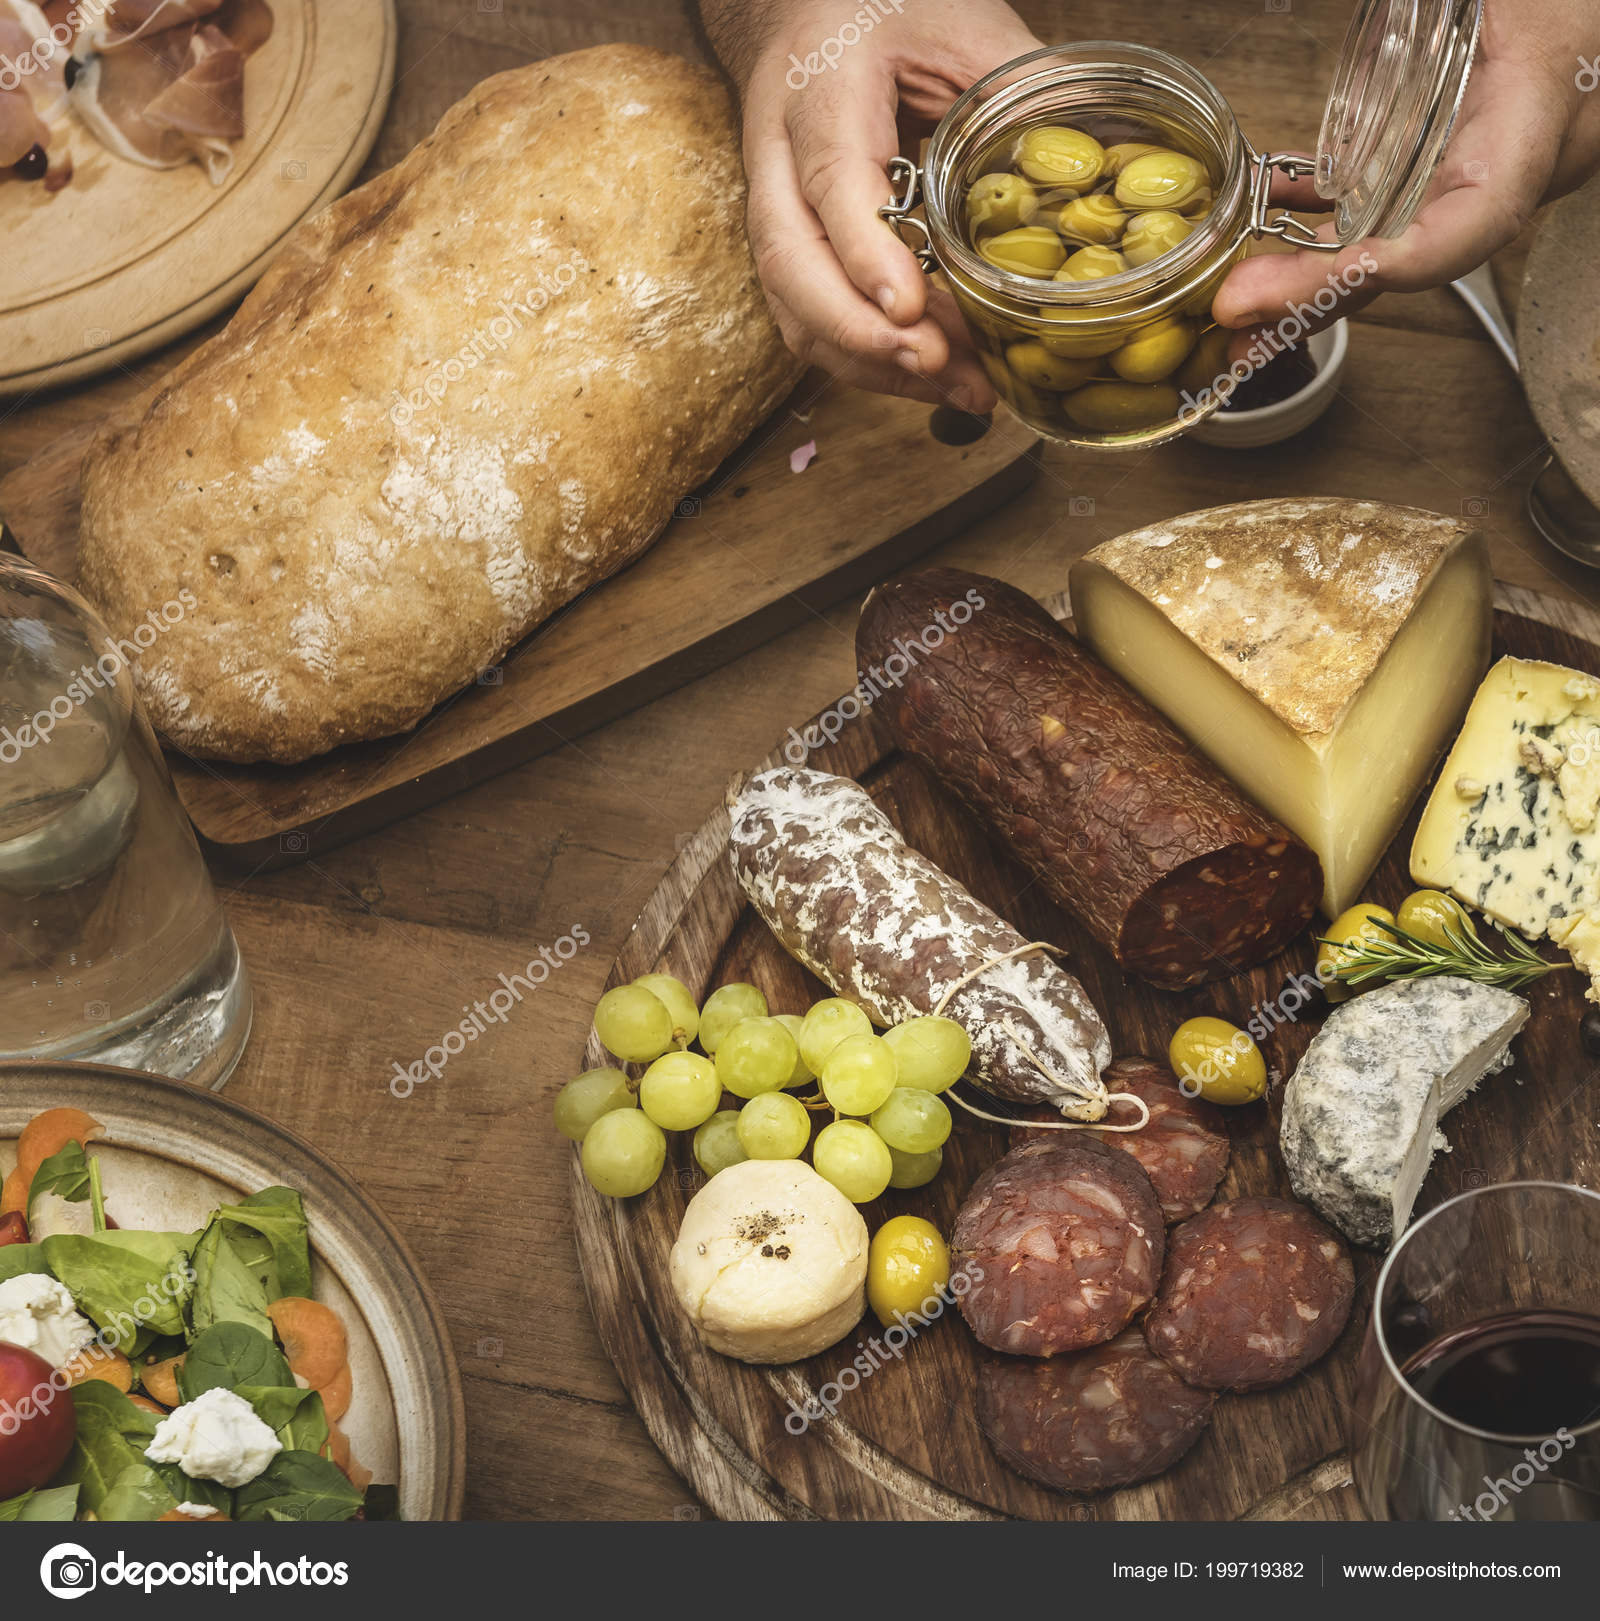 Assorted Cold Cuts Cheese Platter Food Photography Recipe Idea Stock Photo C Rawpixel 199719382